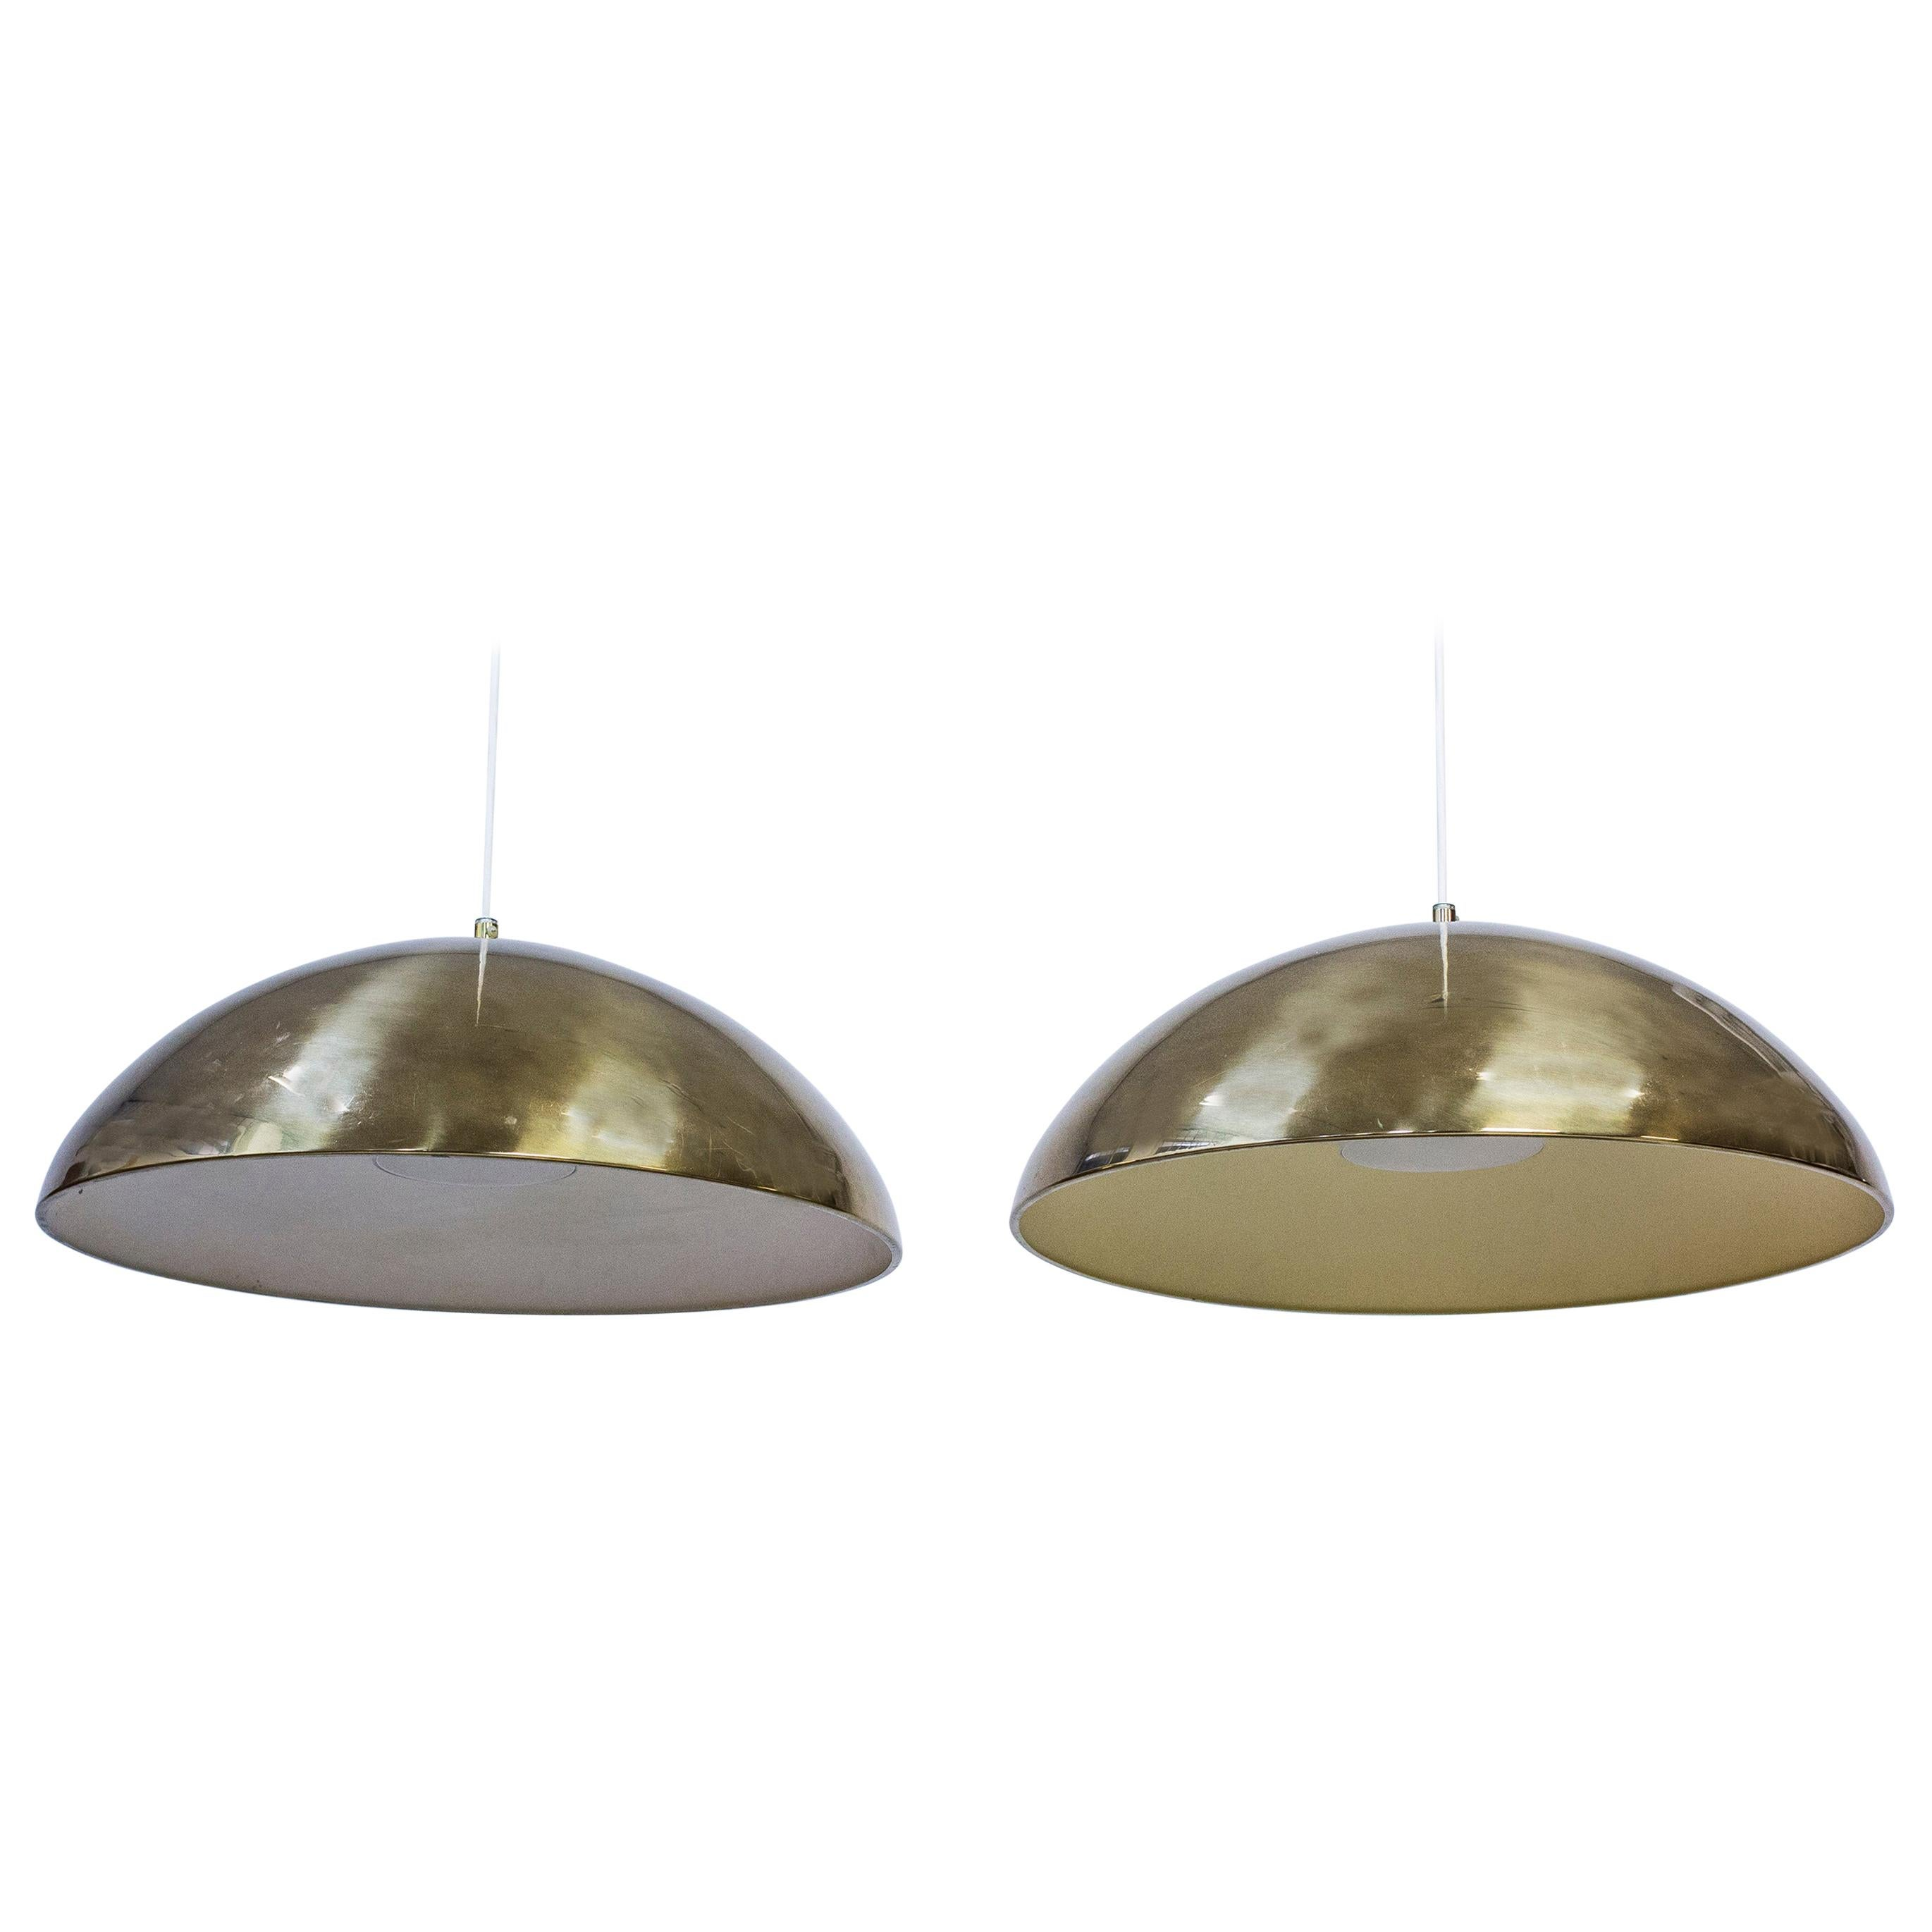 "Pair of Pendant Lamps Model ""T-29"" by Bergboms, Sweden, 1960s"